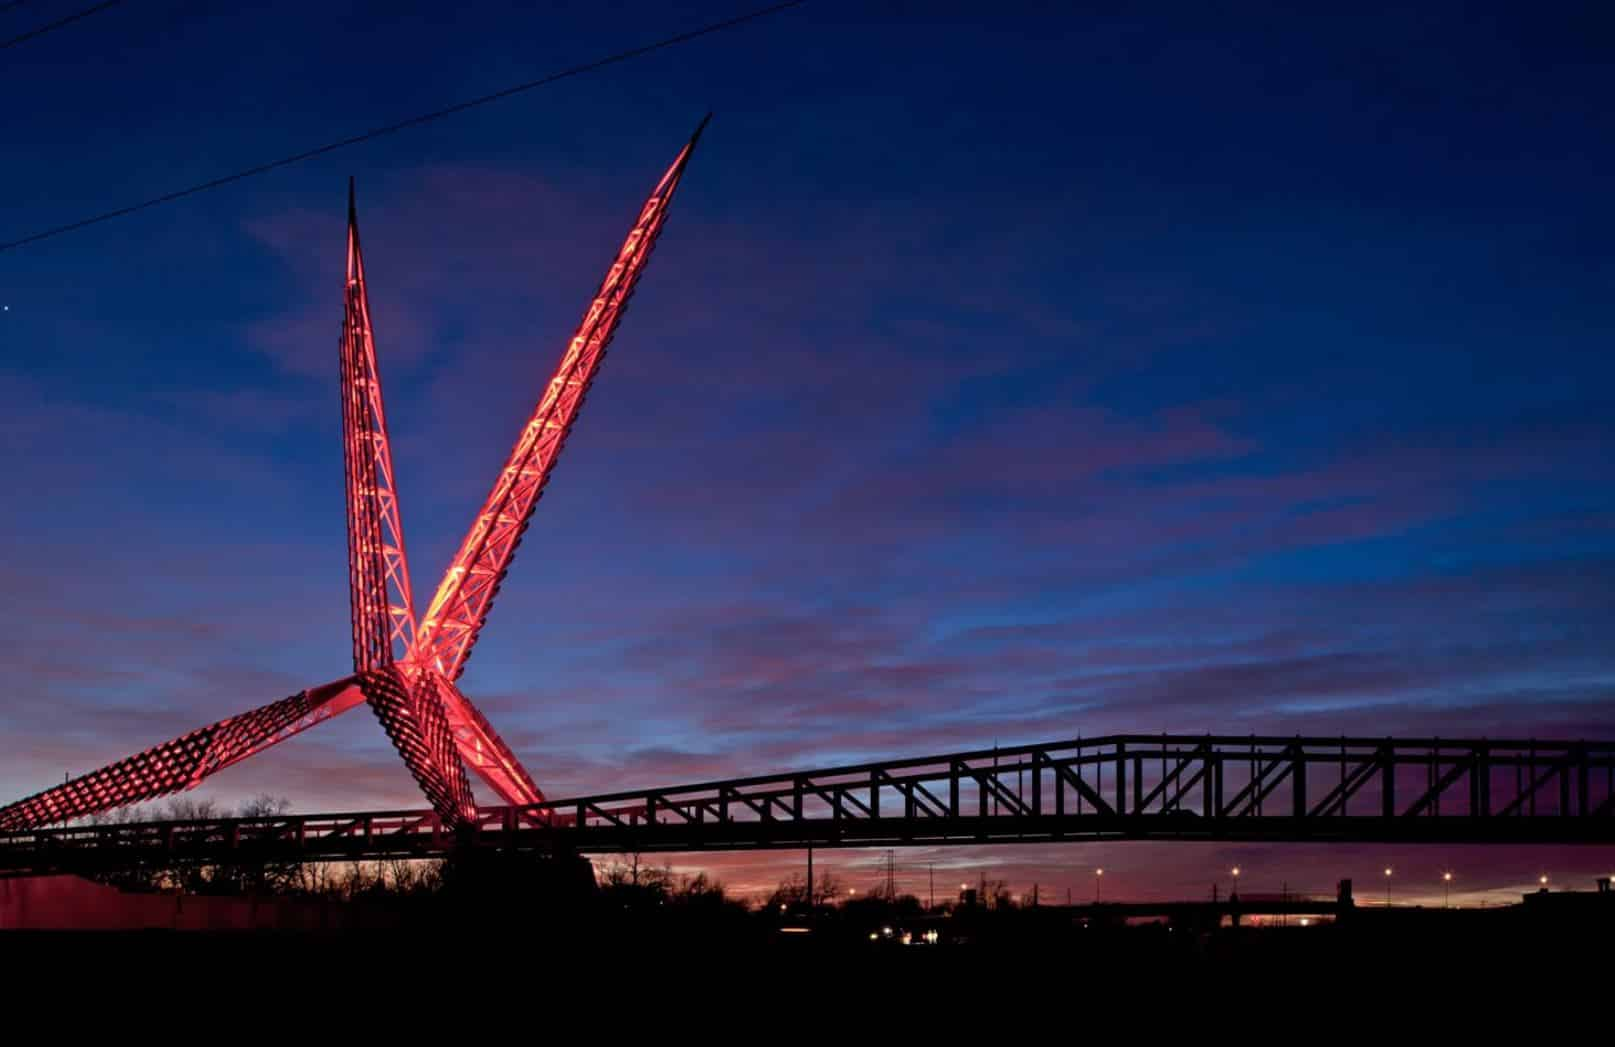 Skydance Bridge in Oklahoma City